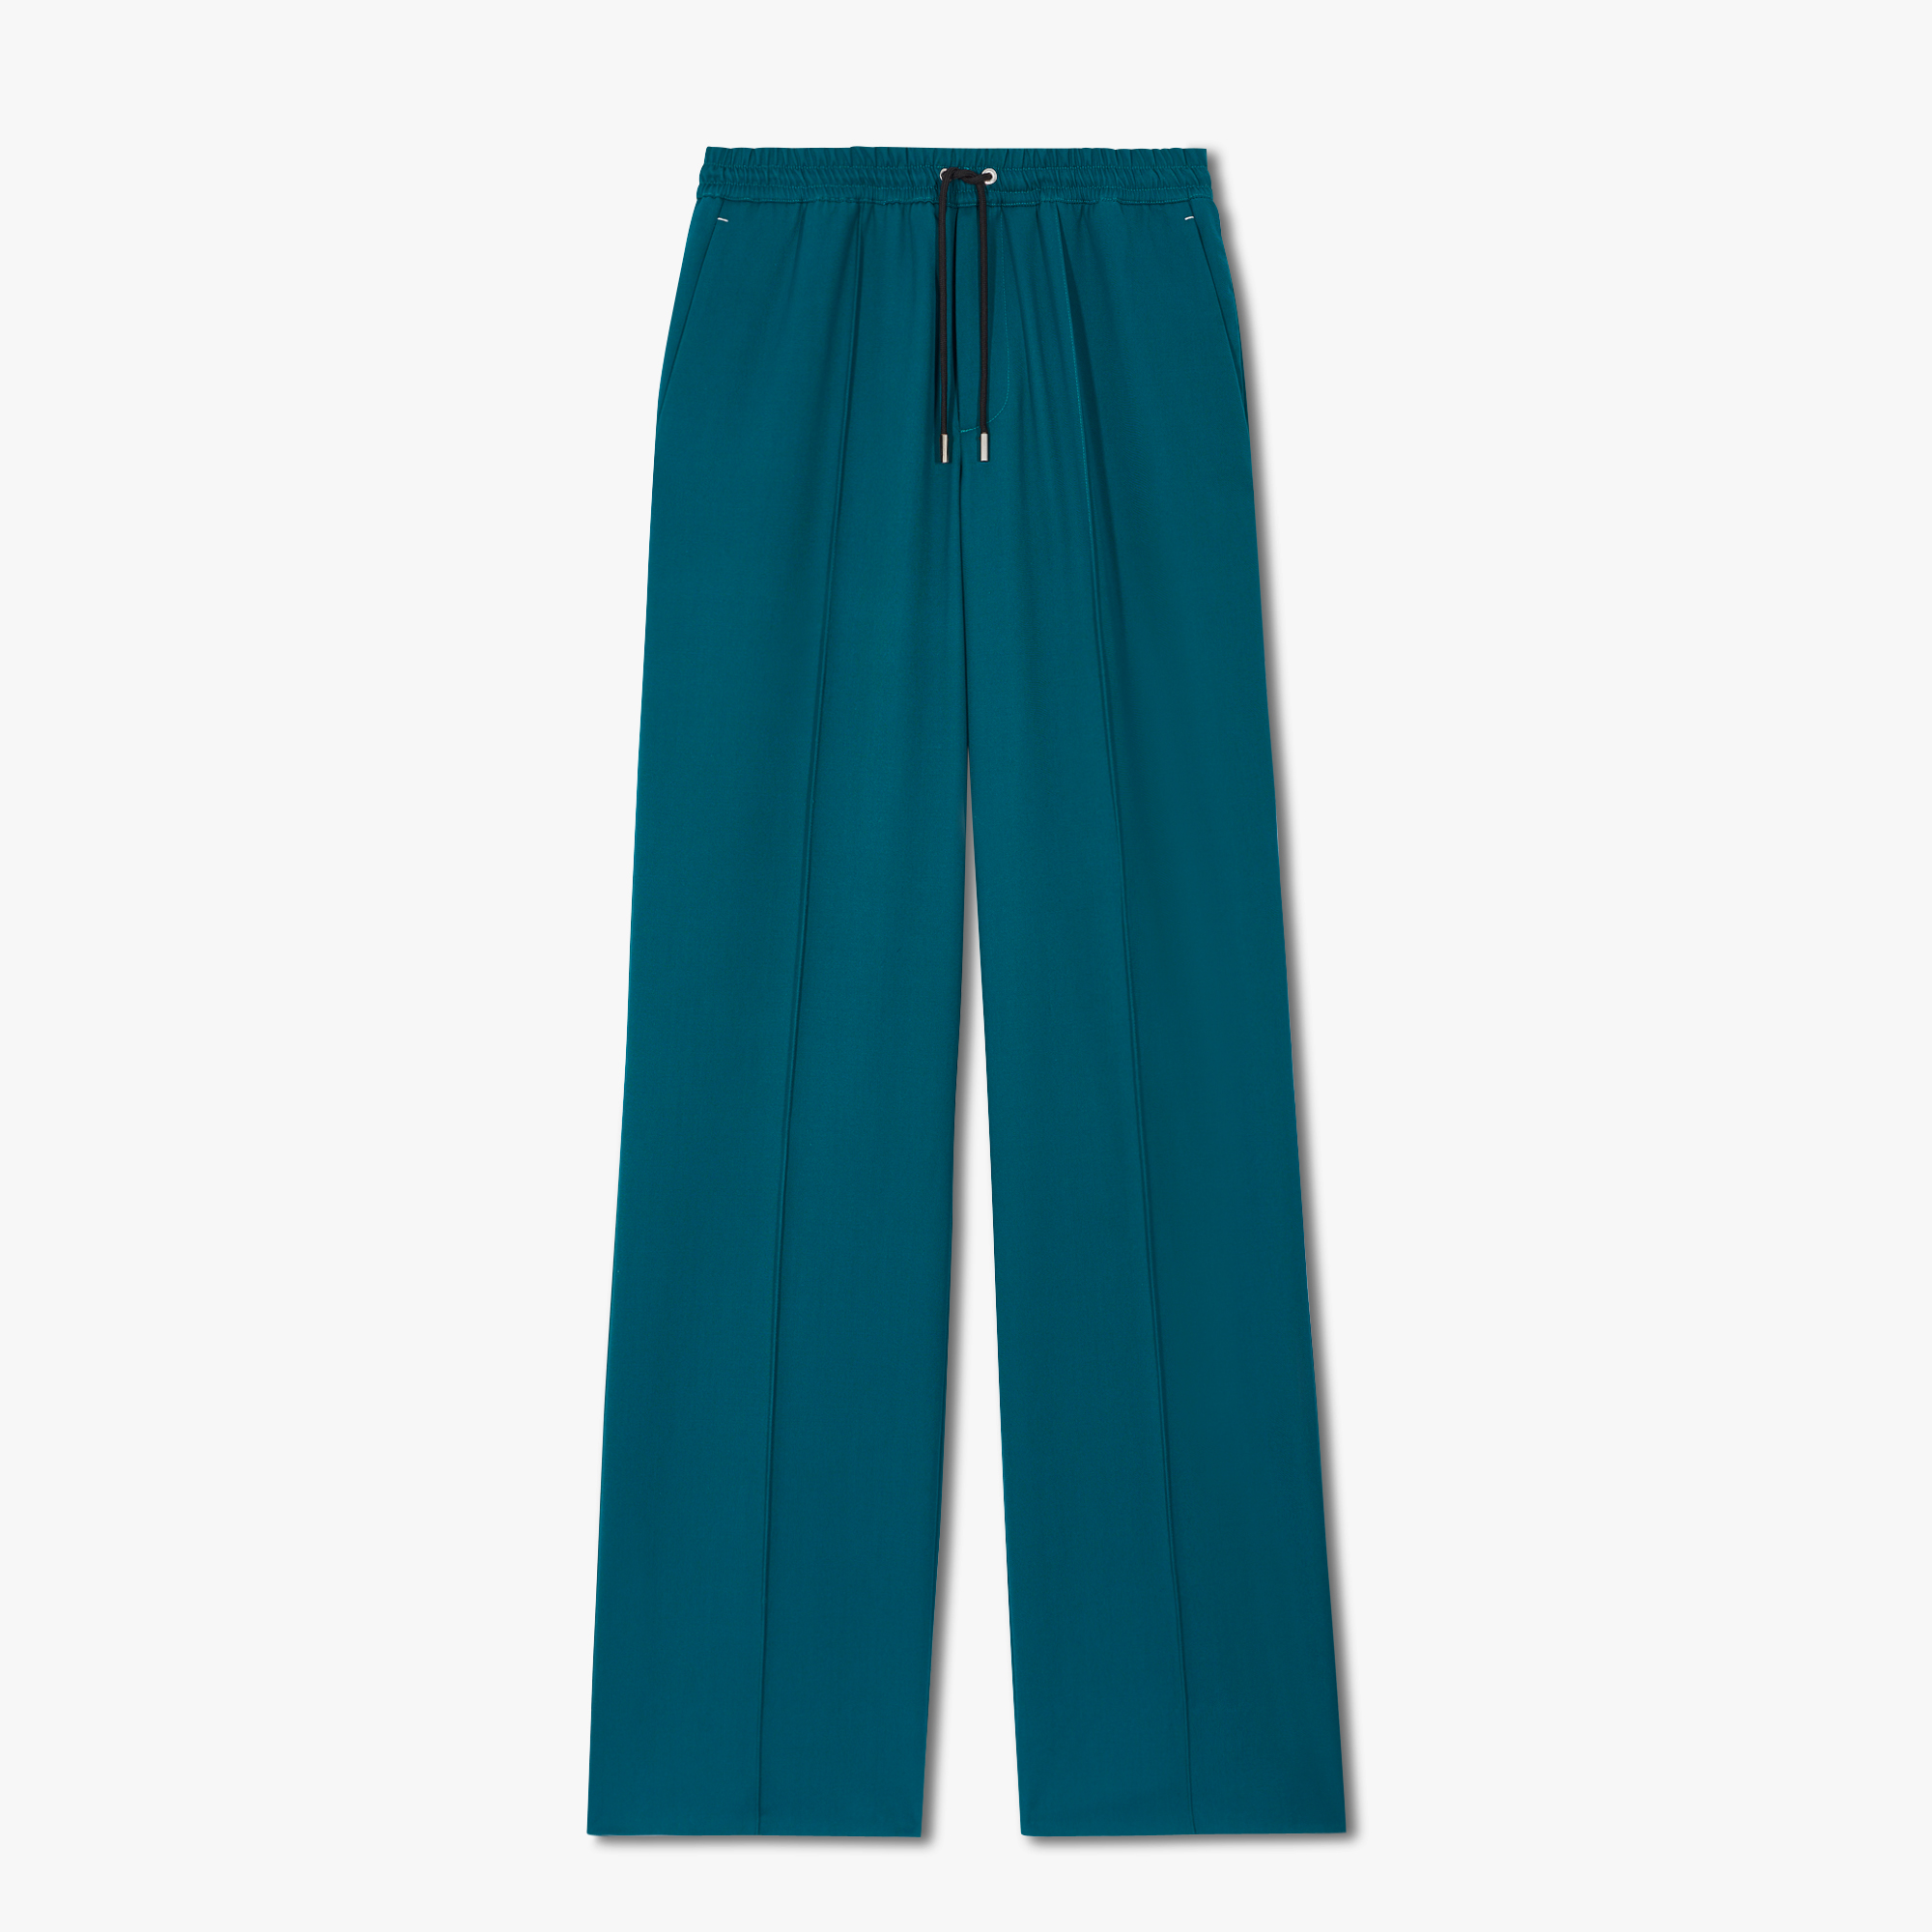 Large Jogging Trousers, ALPINE GREEN, hi-res